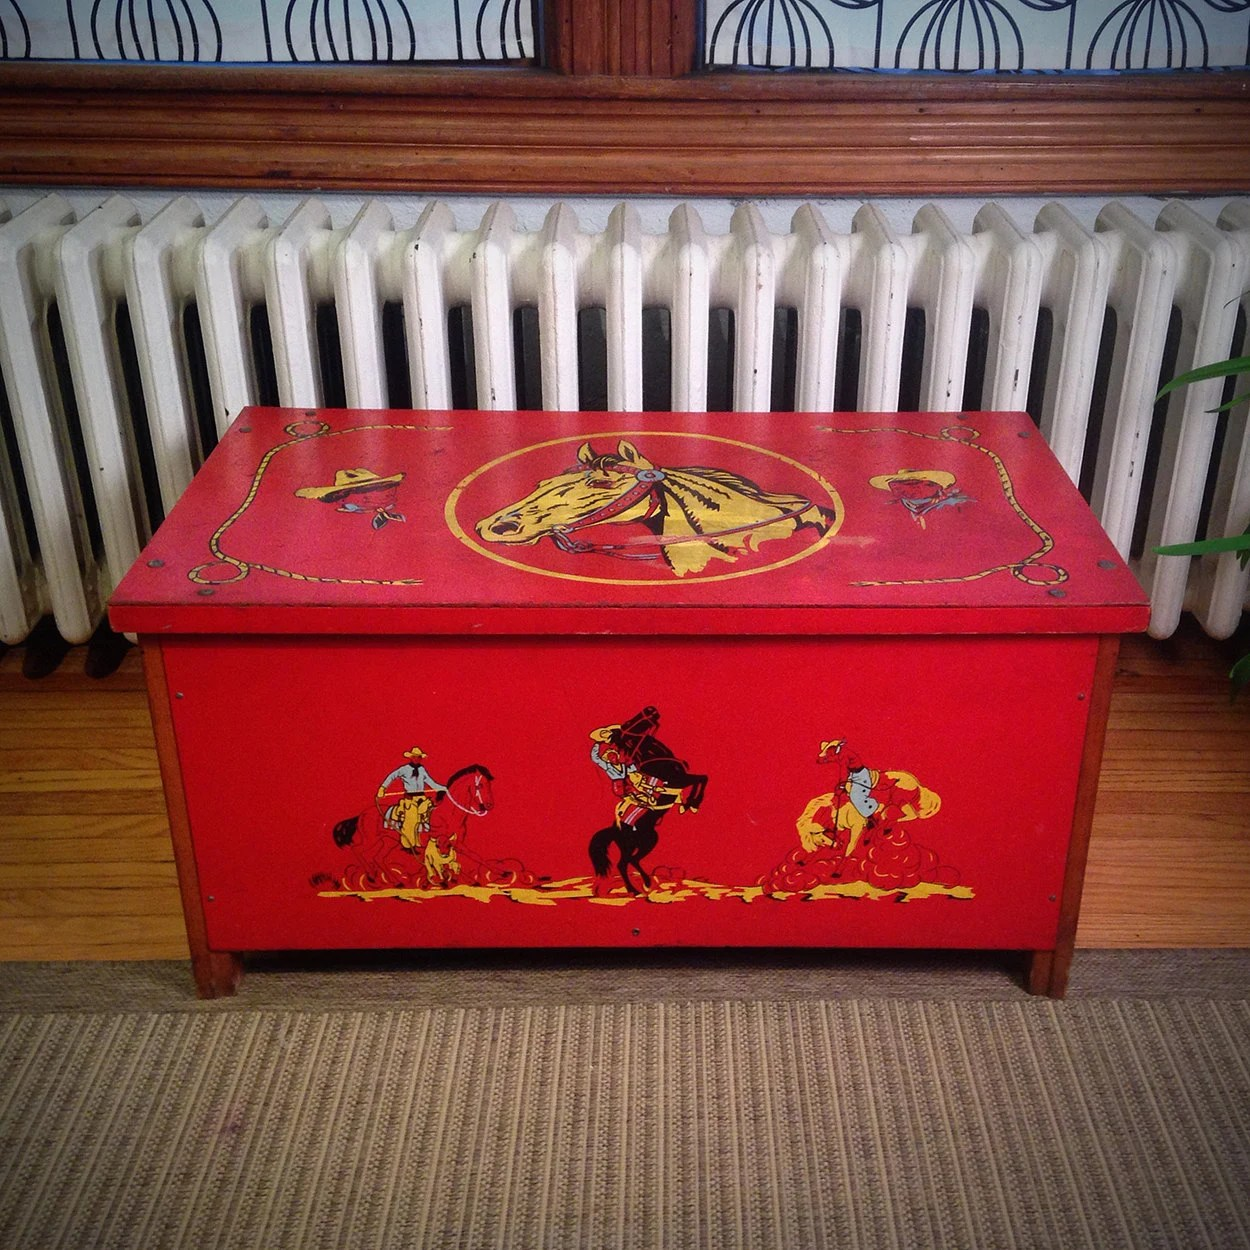 Vintage red toy box featuring cowboys and horses haute juice for Mid century modern toy box